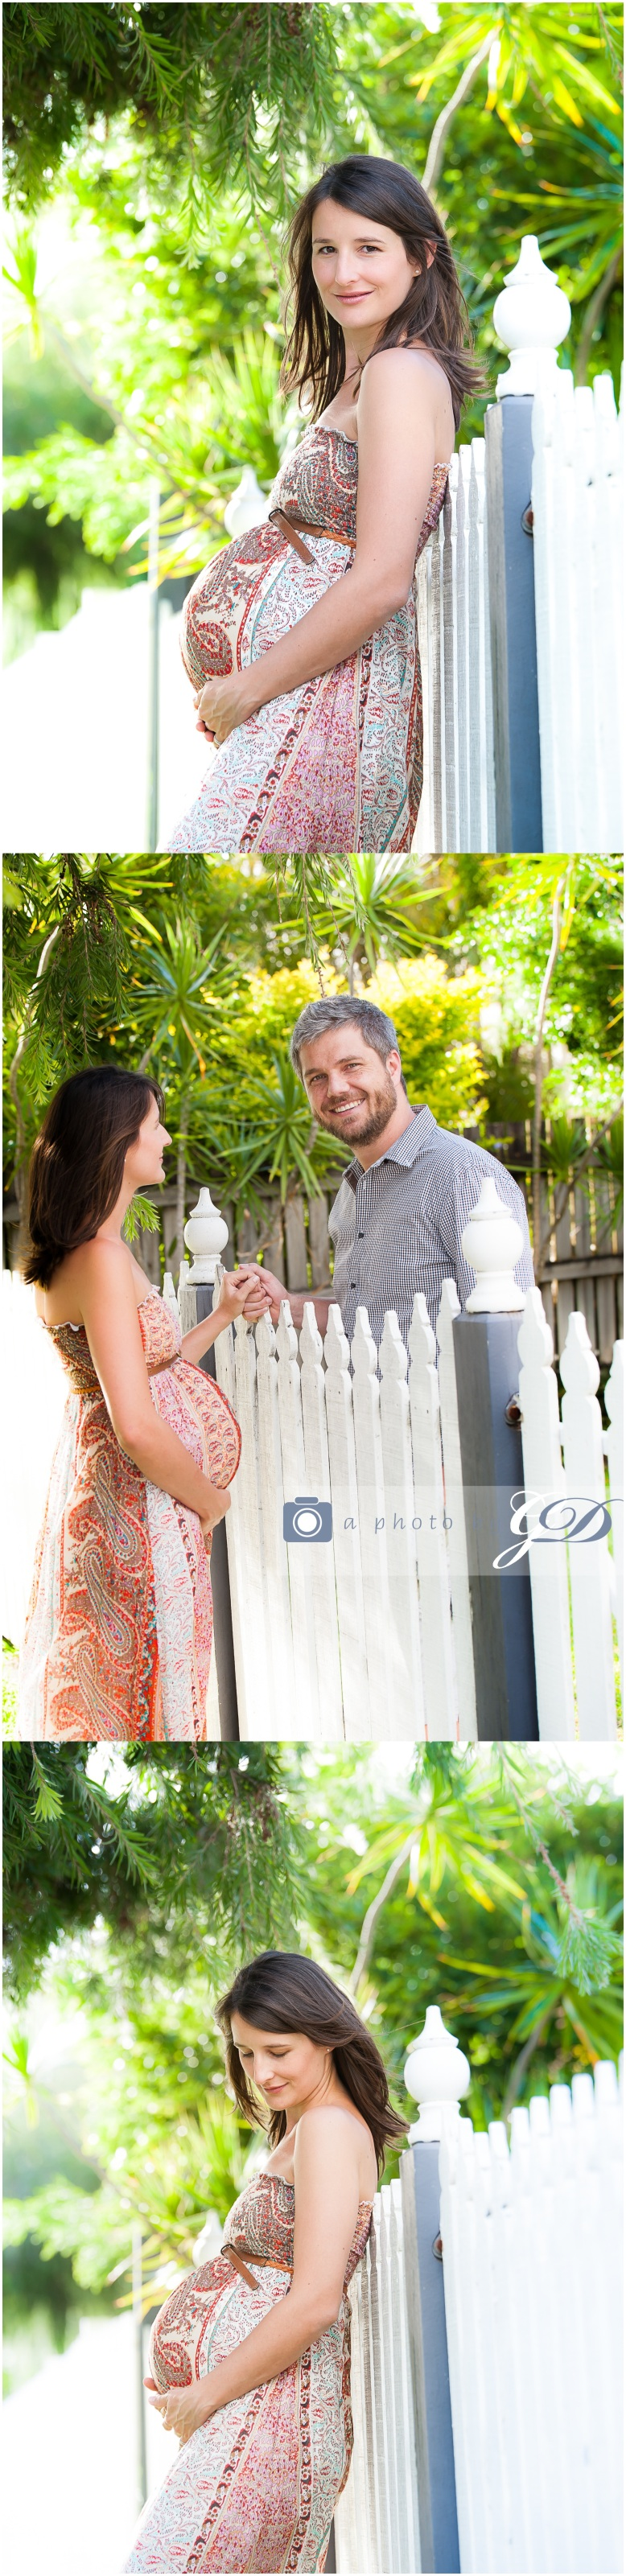 A Photo by GD, Brisbane Maternity Photographer-10